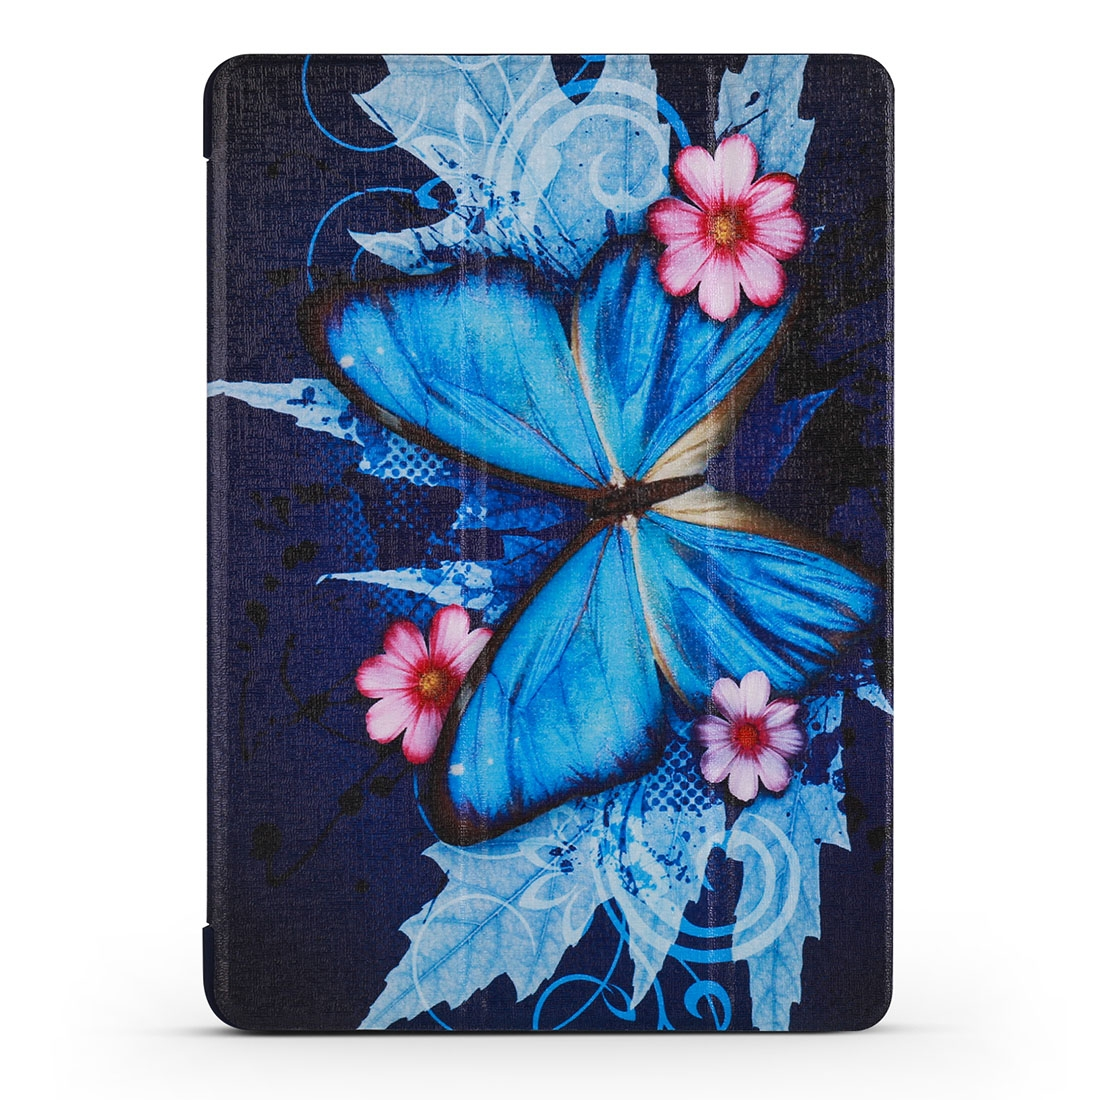 Butterflies  Leather iPad Air 2 Case (2019)/ Pro 10.5 inch, with Tri-Fold Honeycomb Durable Cover